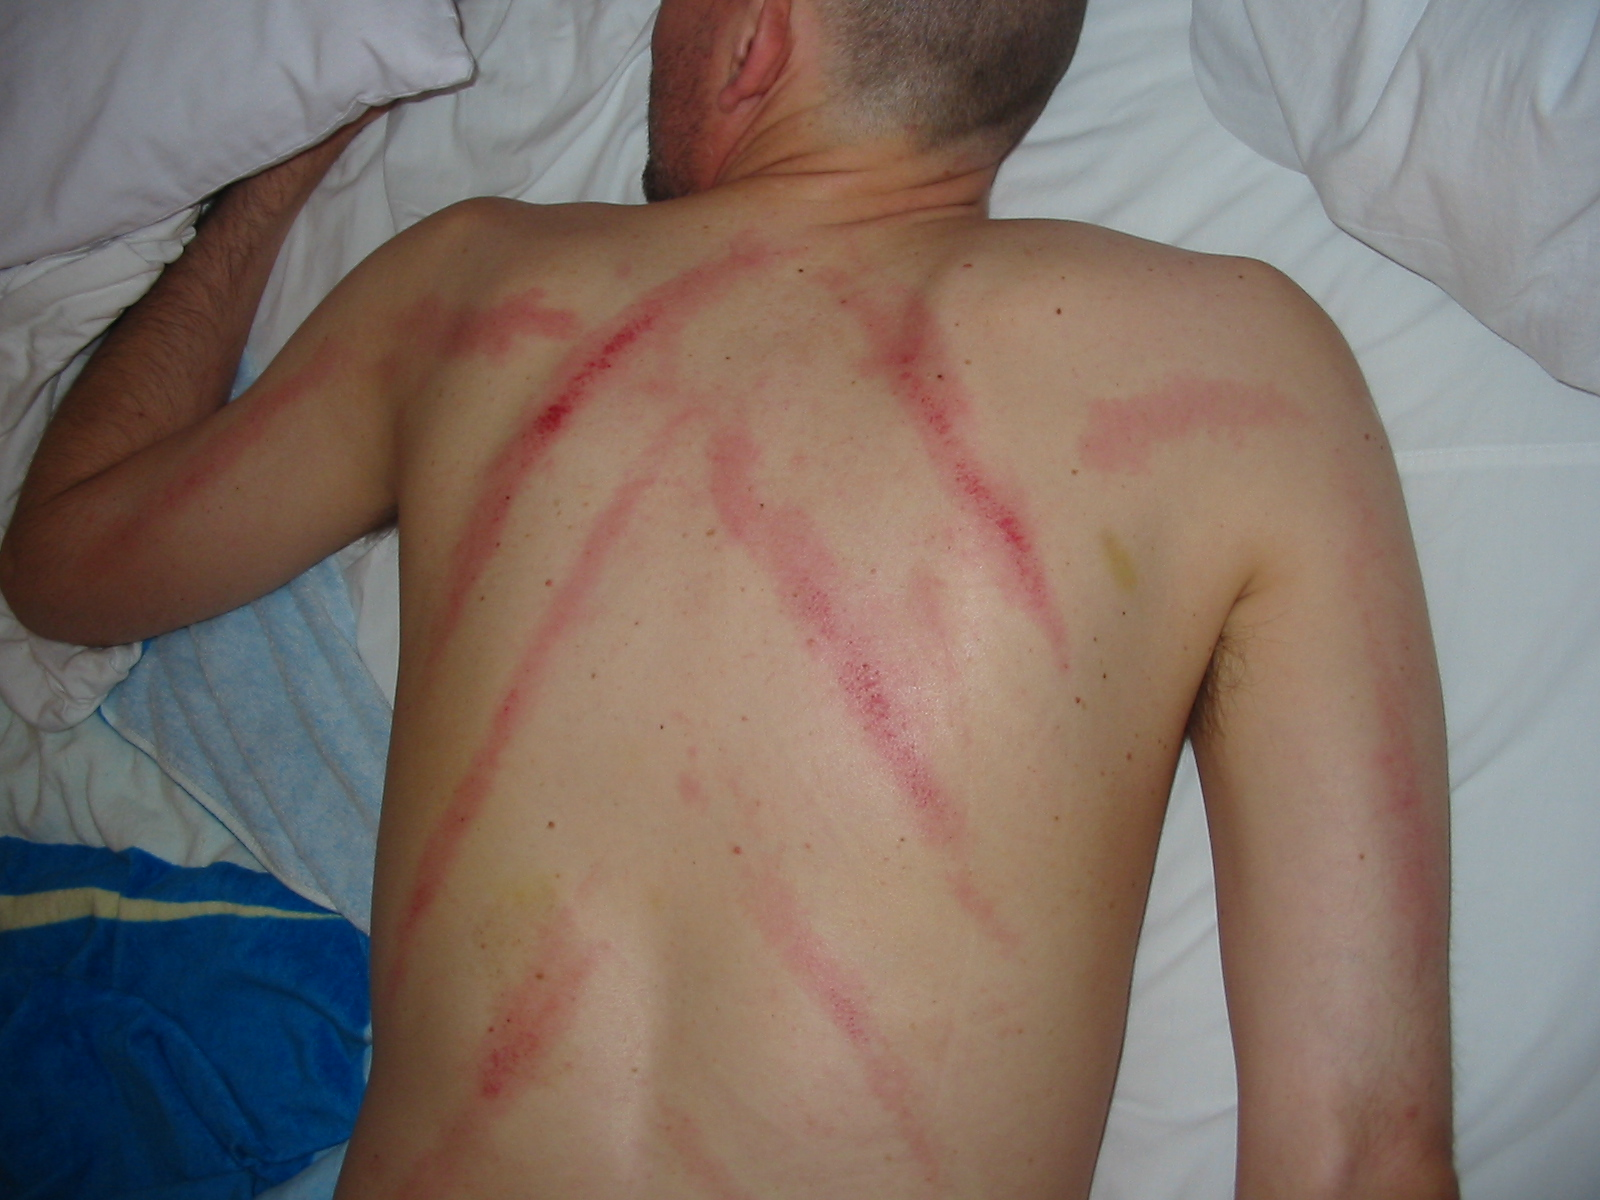 File:Gua Sha.jpg - Wikipedia, the free encyclopedia